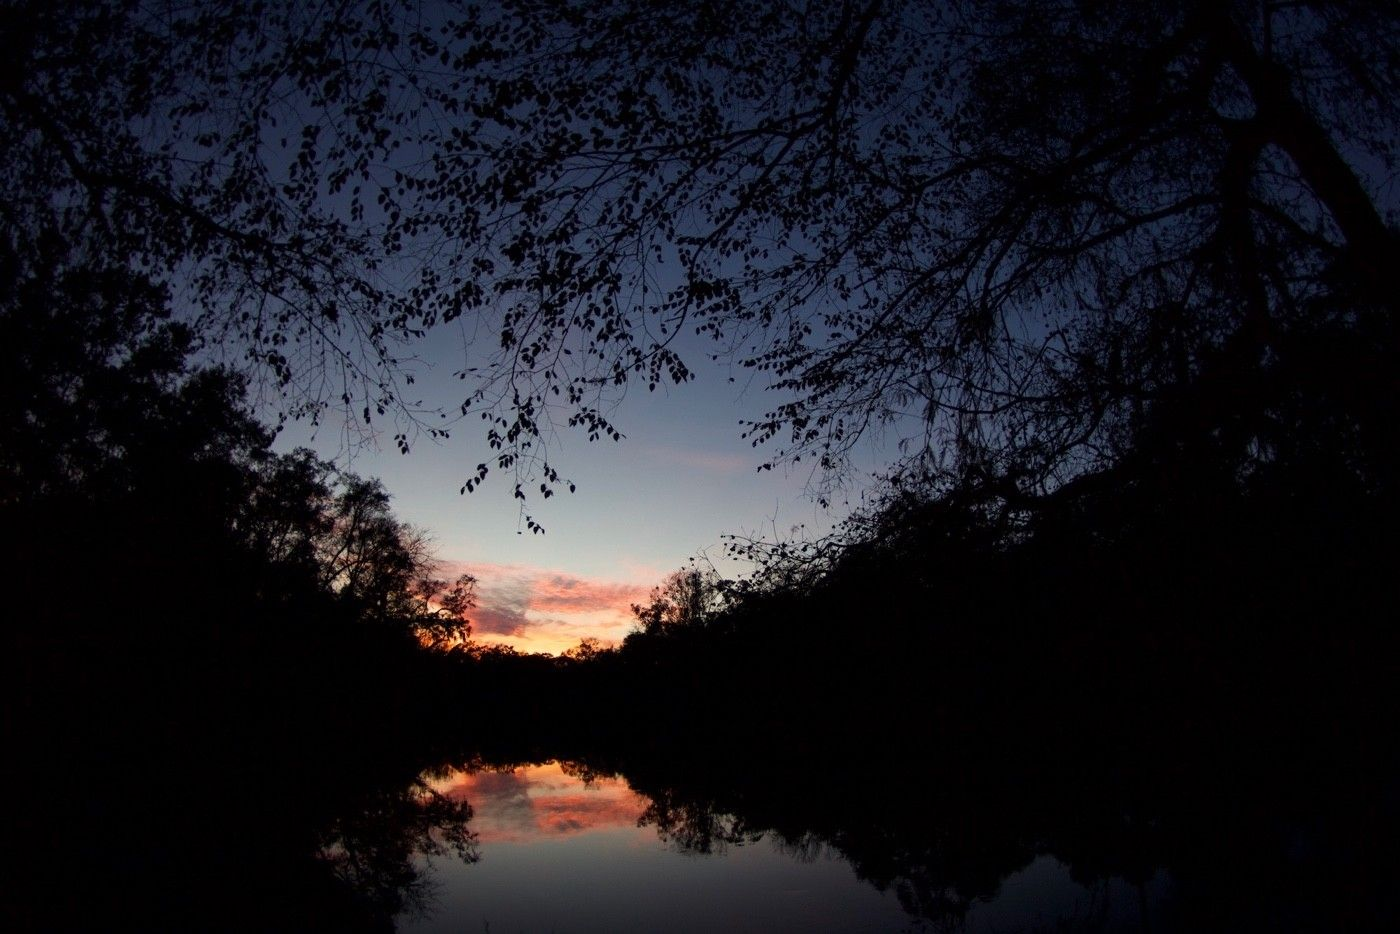 Night falls on the Suwannee River.